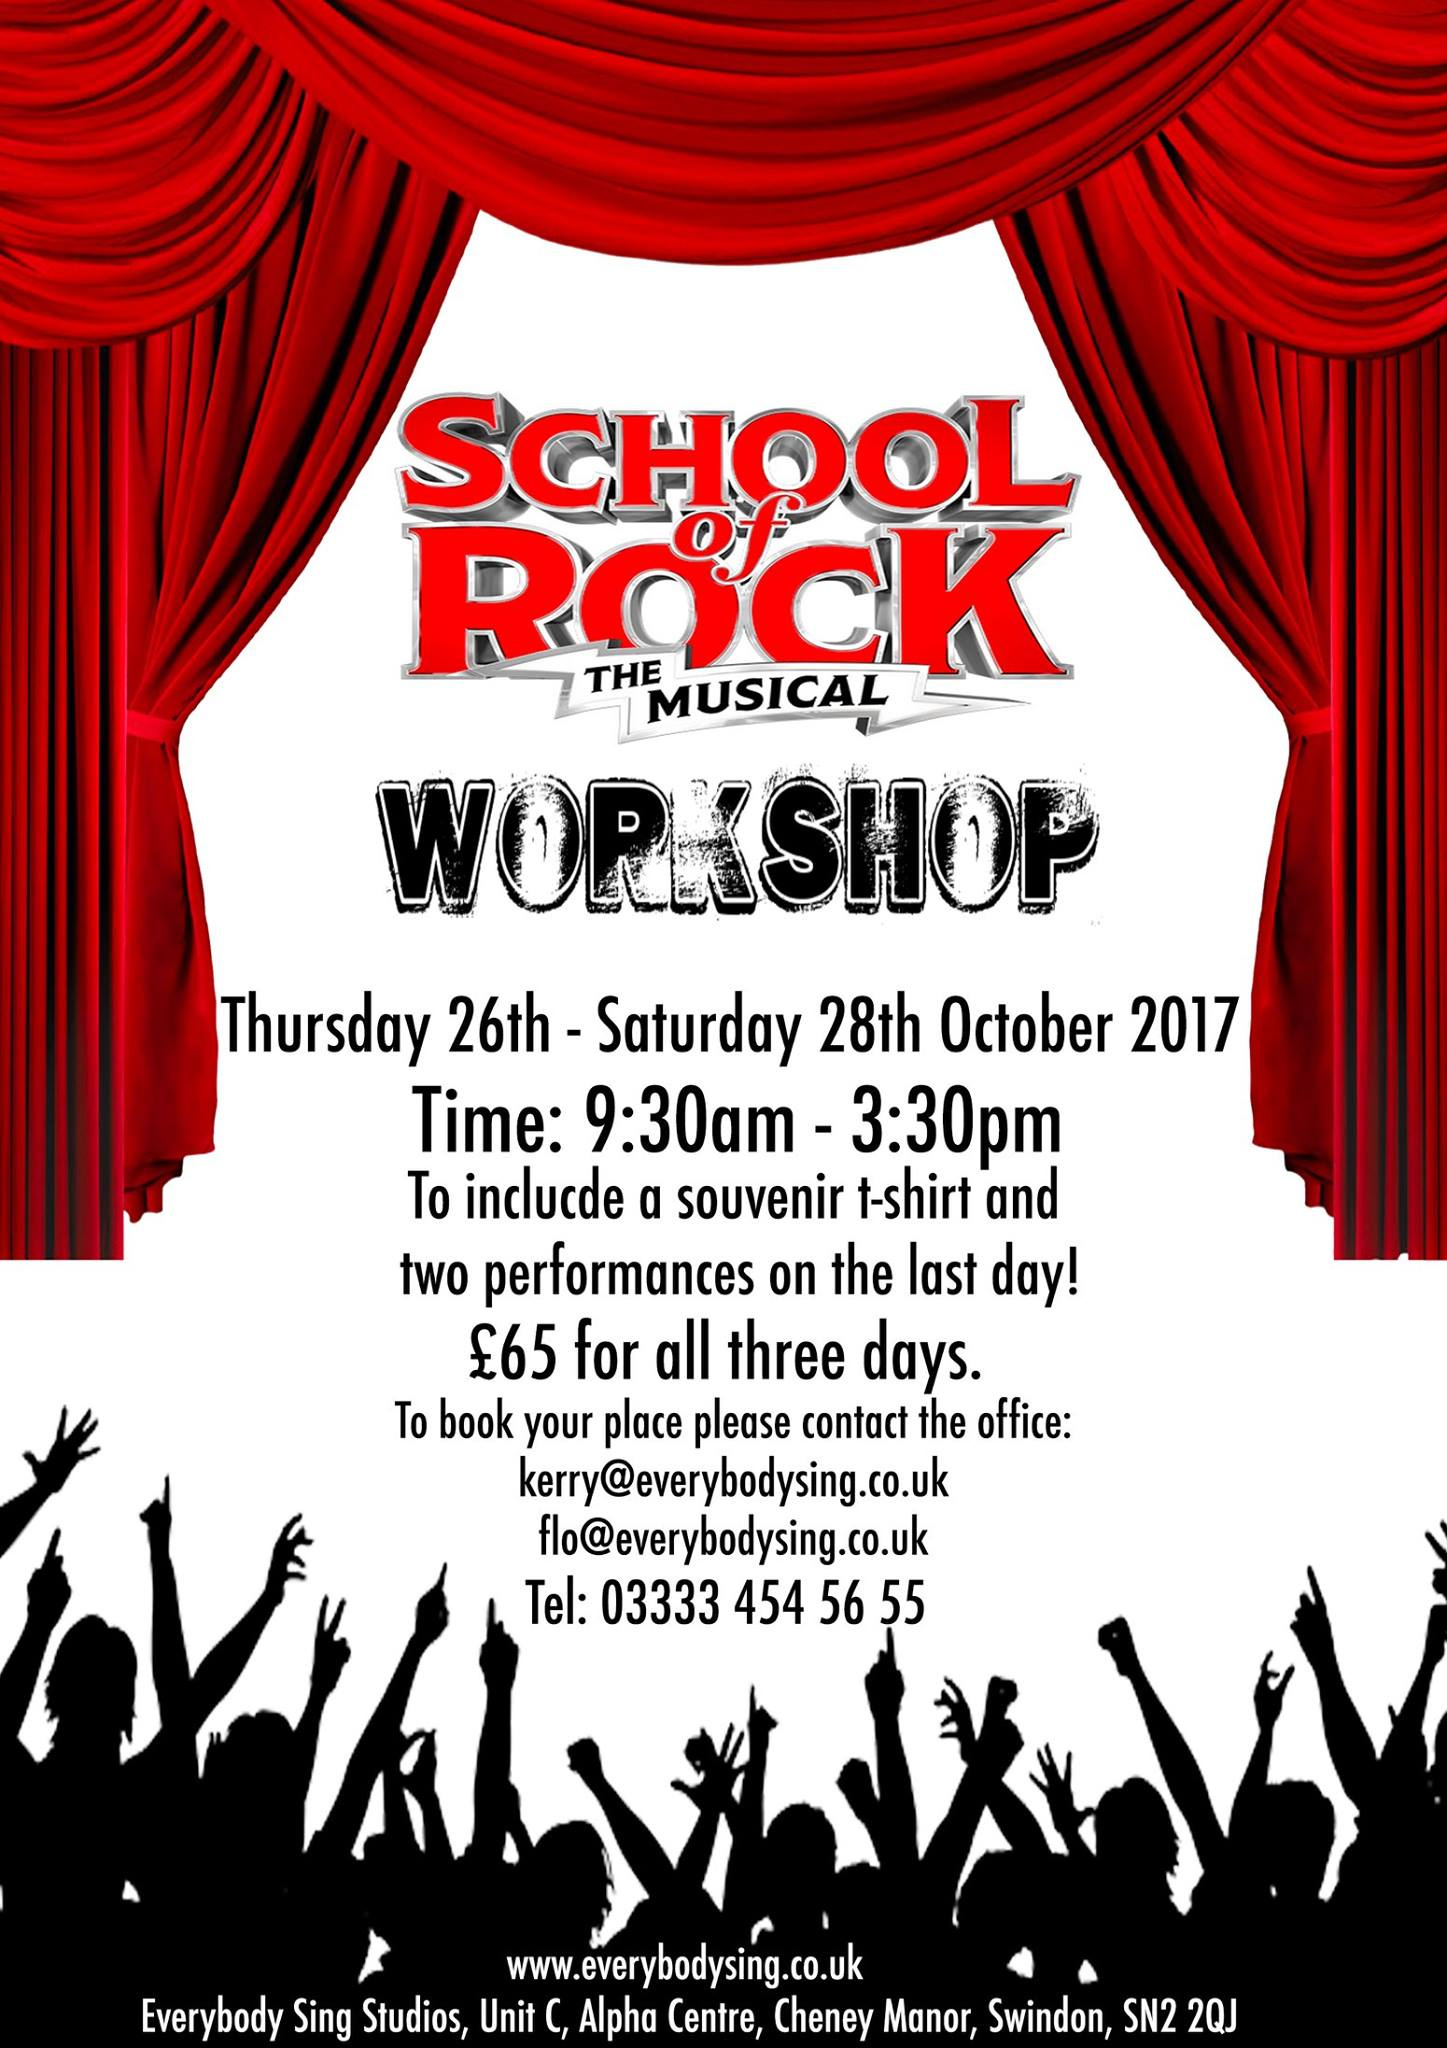 EVERYBODY SING - SCHOOL OF ROCK WORKSHOP